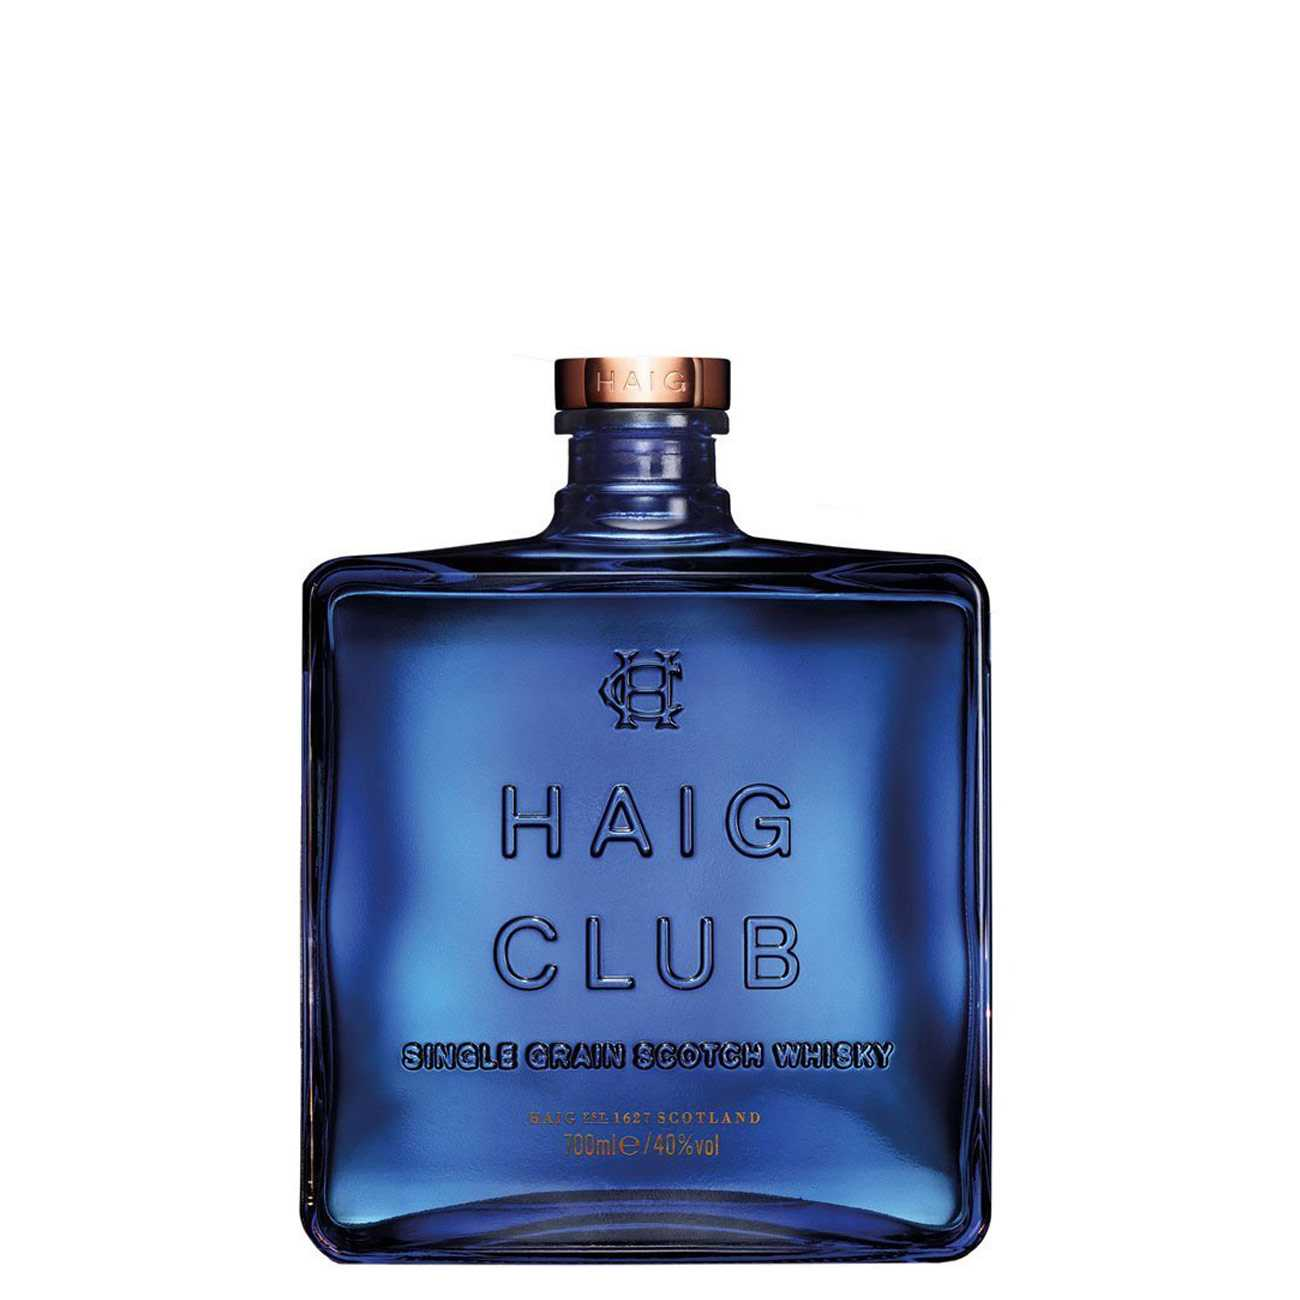 Whisky scotian, SINGLE GRAIN SCOTCH WHISKY 700 ML, Haig Club